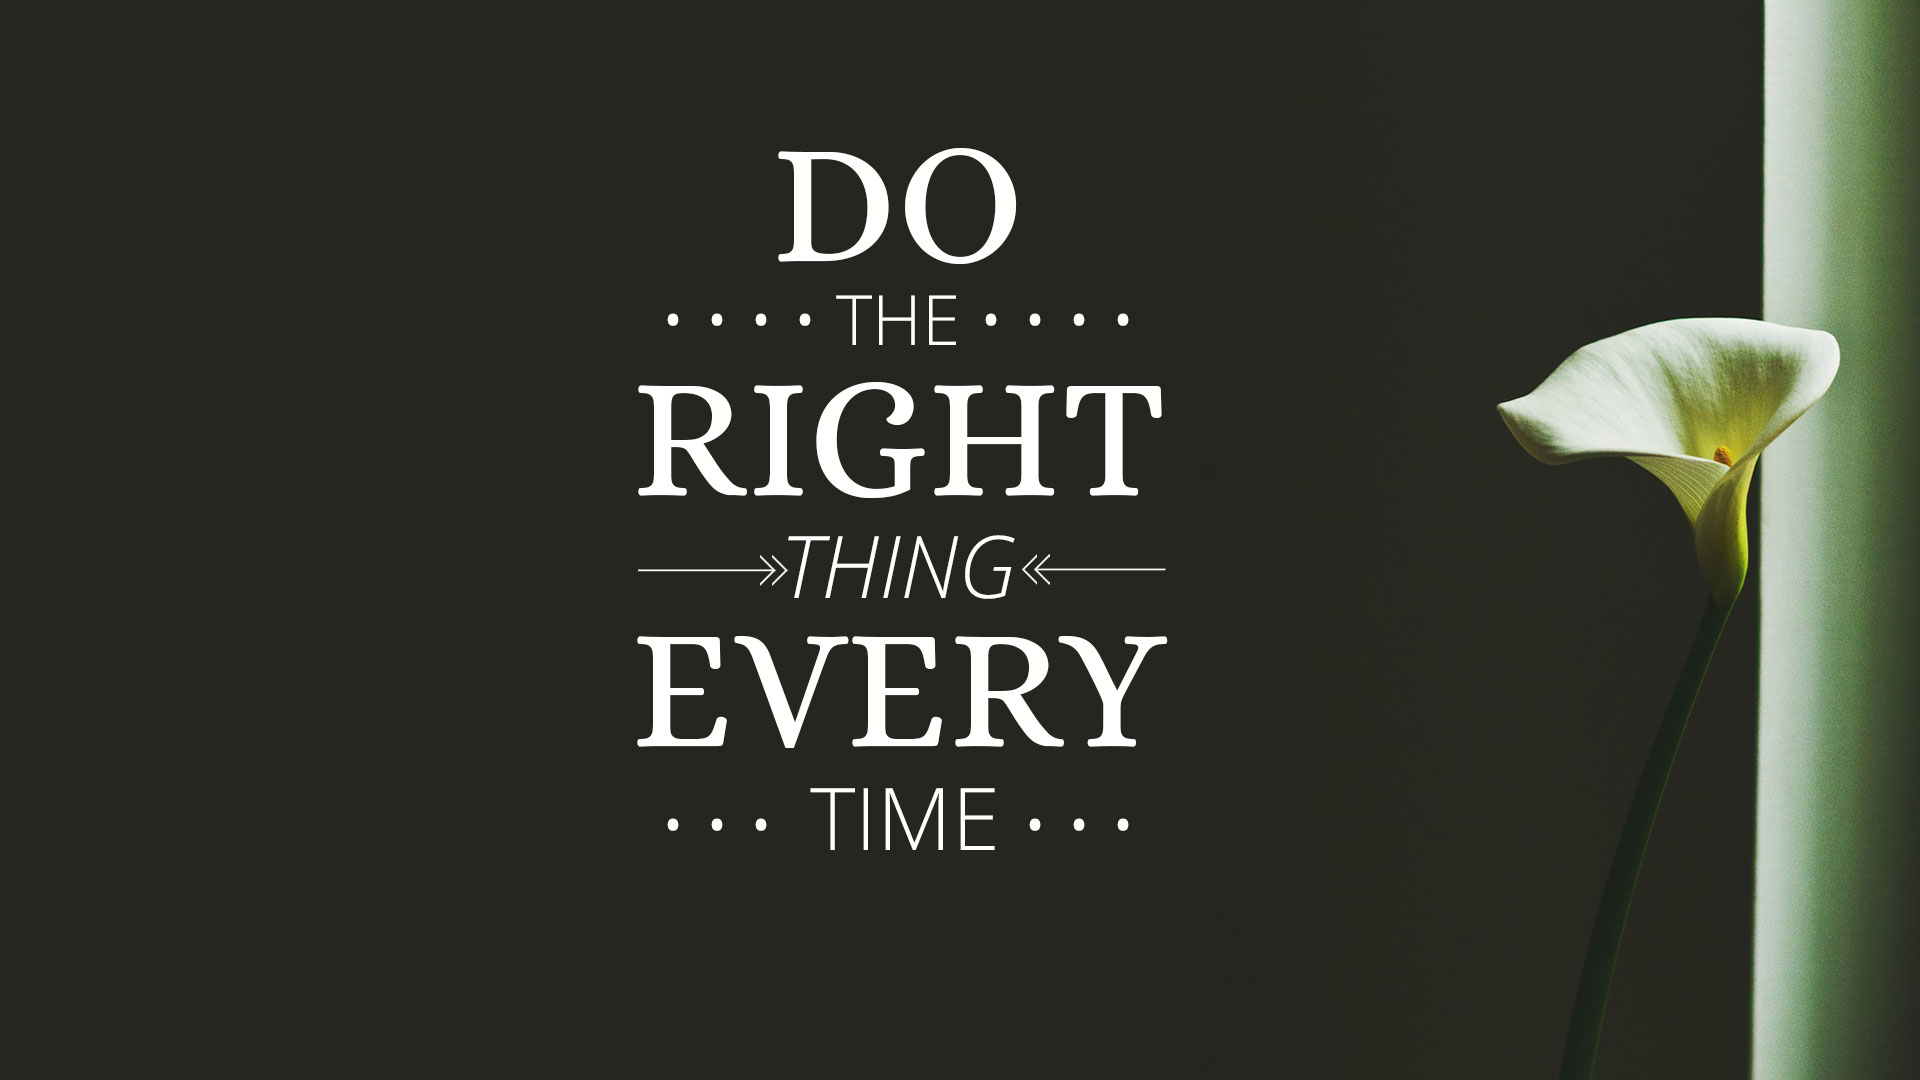 Management Philosophy Do The Right Thing Every Time